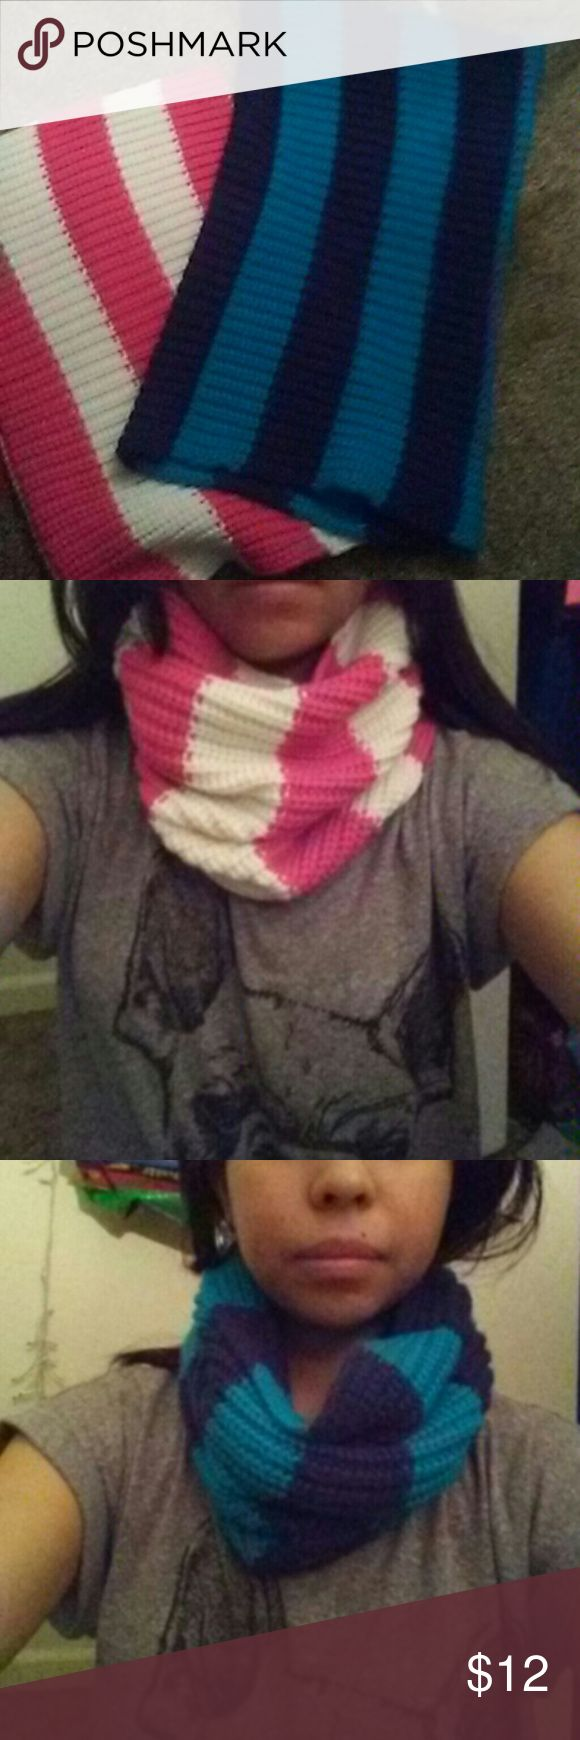 Scarfs From old navy never worn 2 for 1👍 Old Navy Accessories Scarves & Wraps